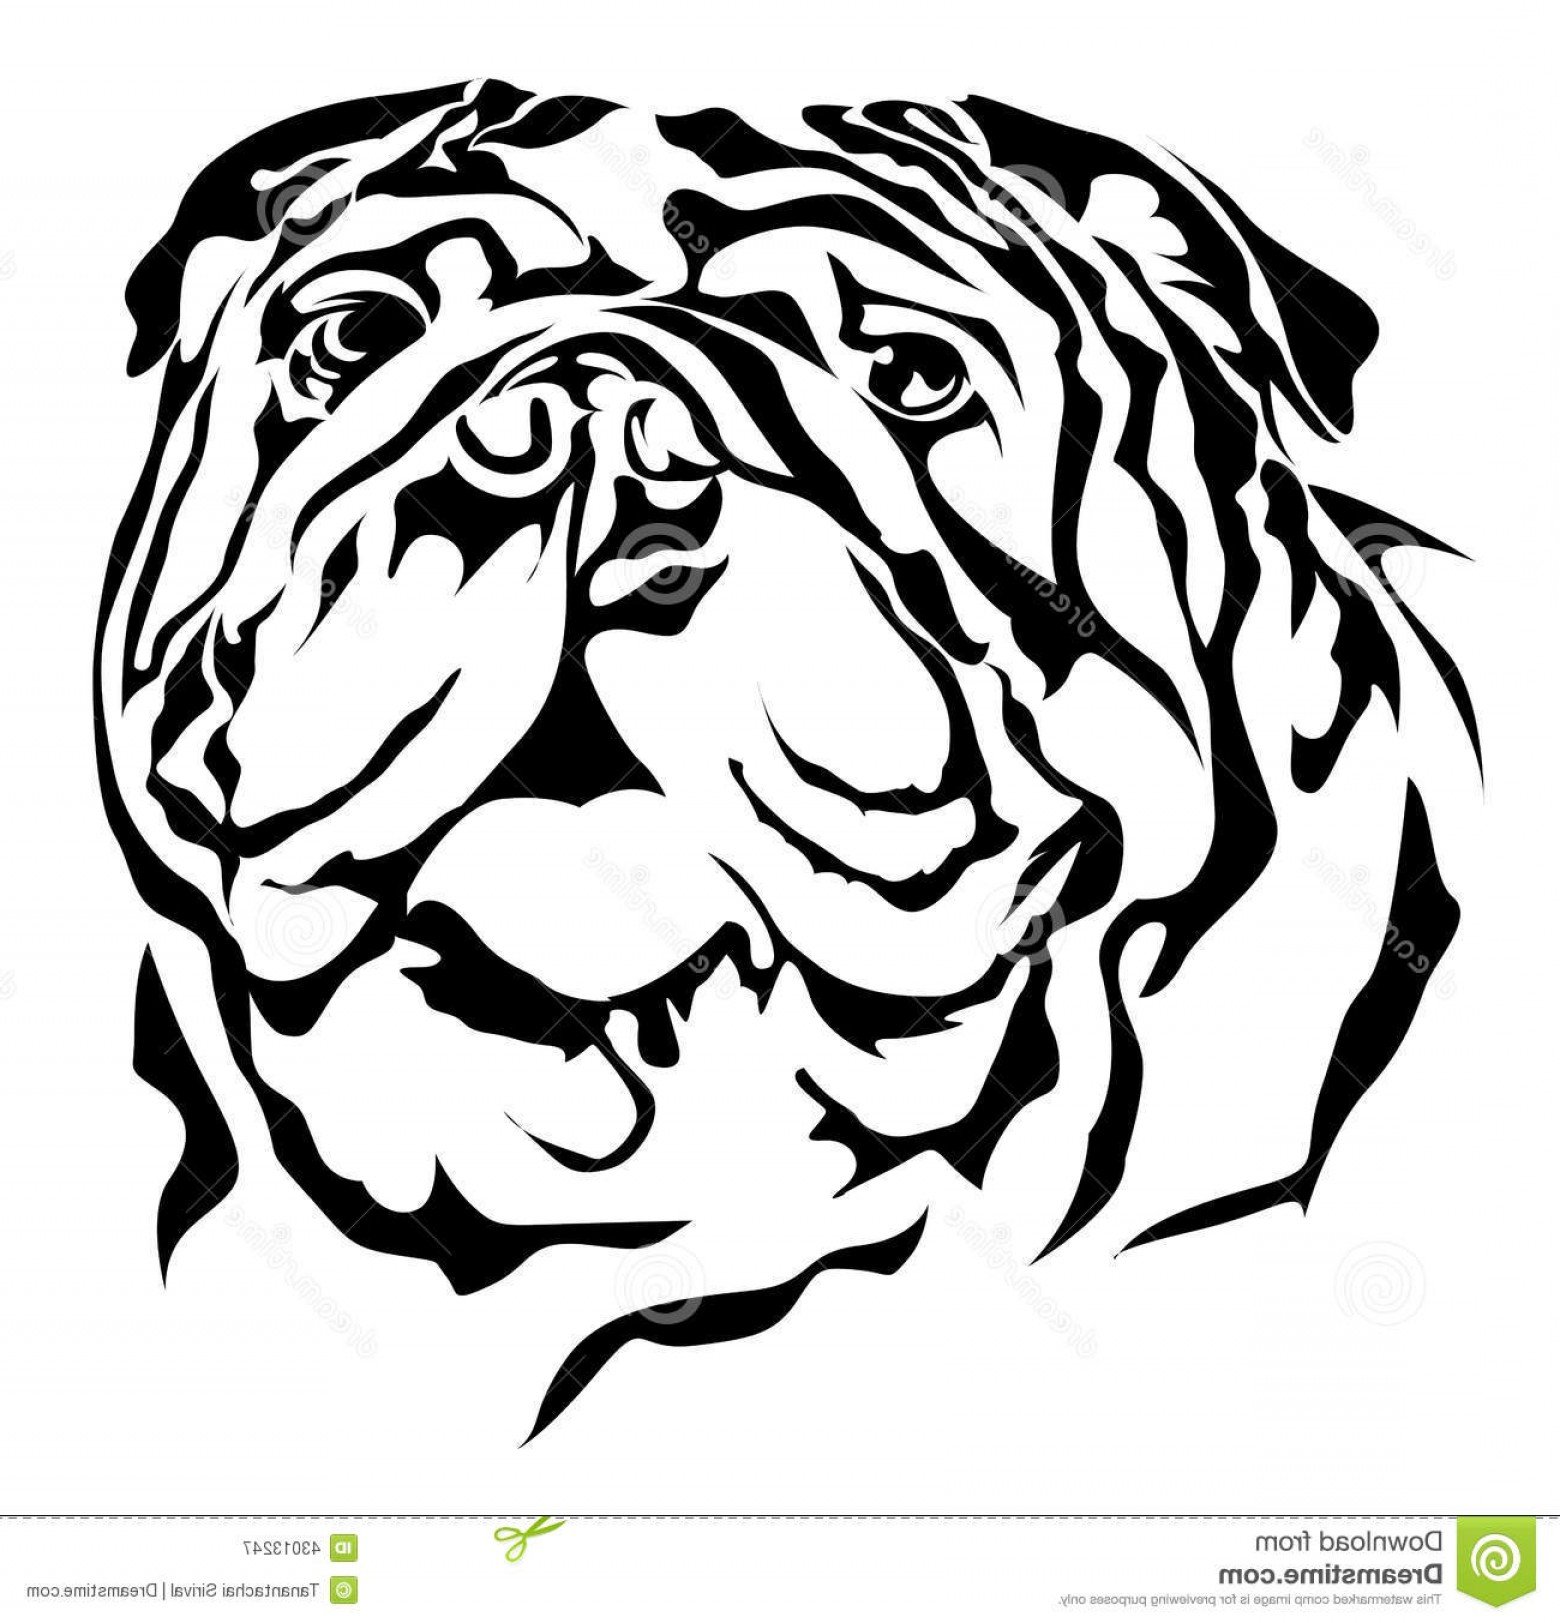 Bulldog Vector Art: Stock Illustration Bulldog Vector Silhouette White Background Image